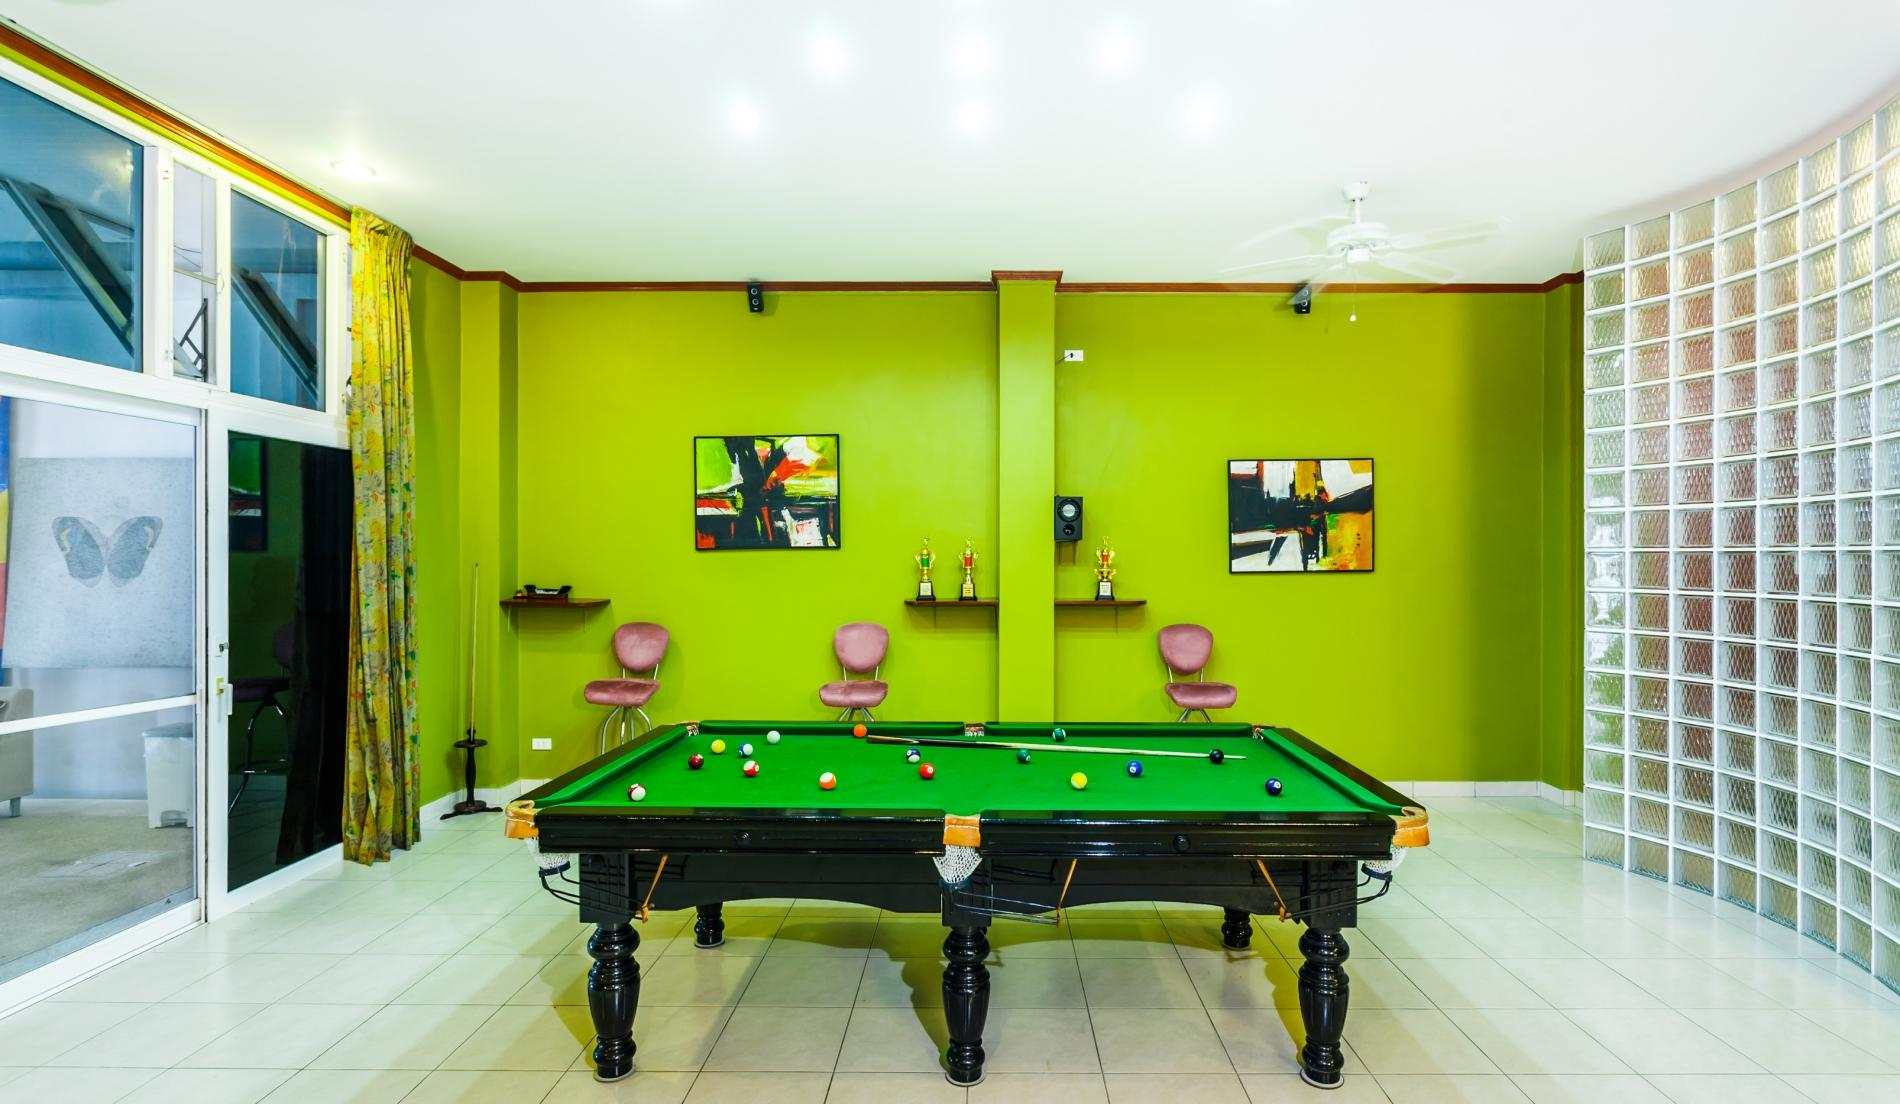 Jungceylon villa - Private swimming pool and billiards in the heart of Patong photo 20389851